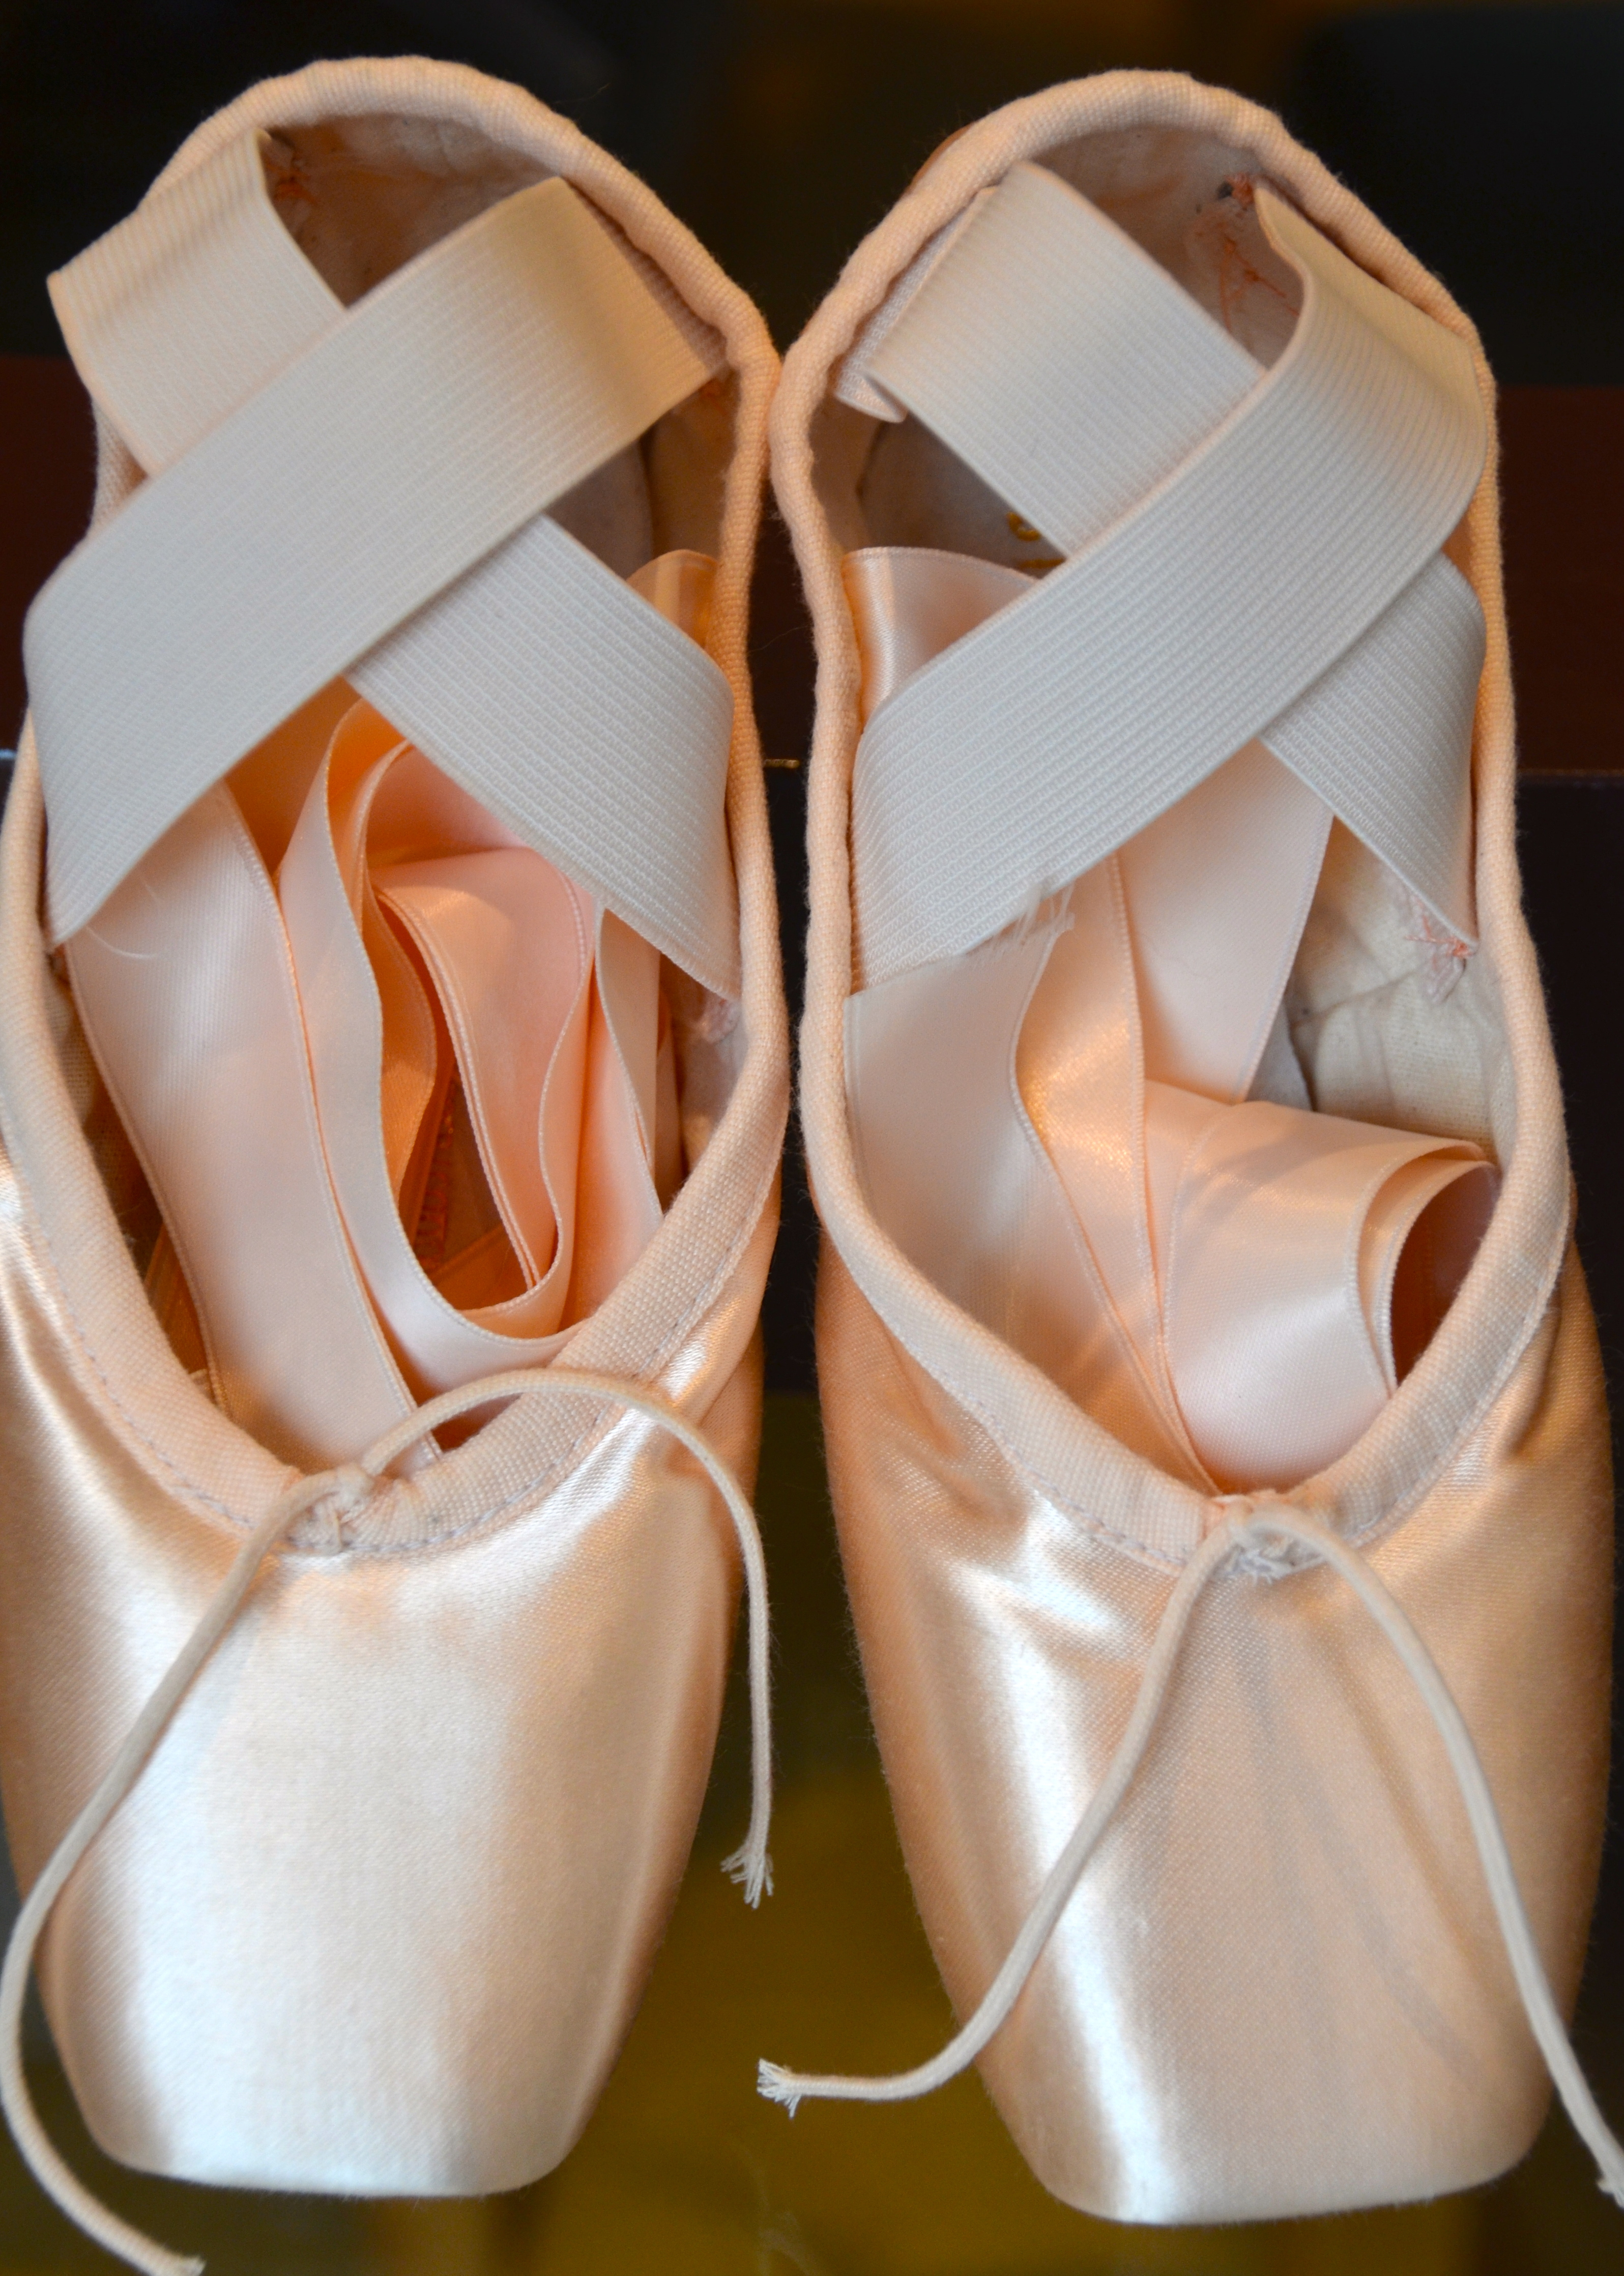 How To Sew Ribbons On Pointe Shoes : ribbons, pointe, shoes, Edgar, Degas, Know,, About, Ballet, Pointe, Shoes, Navigating, Labyrinth